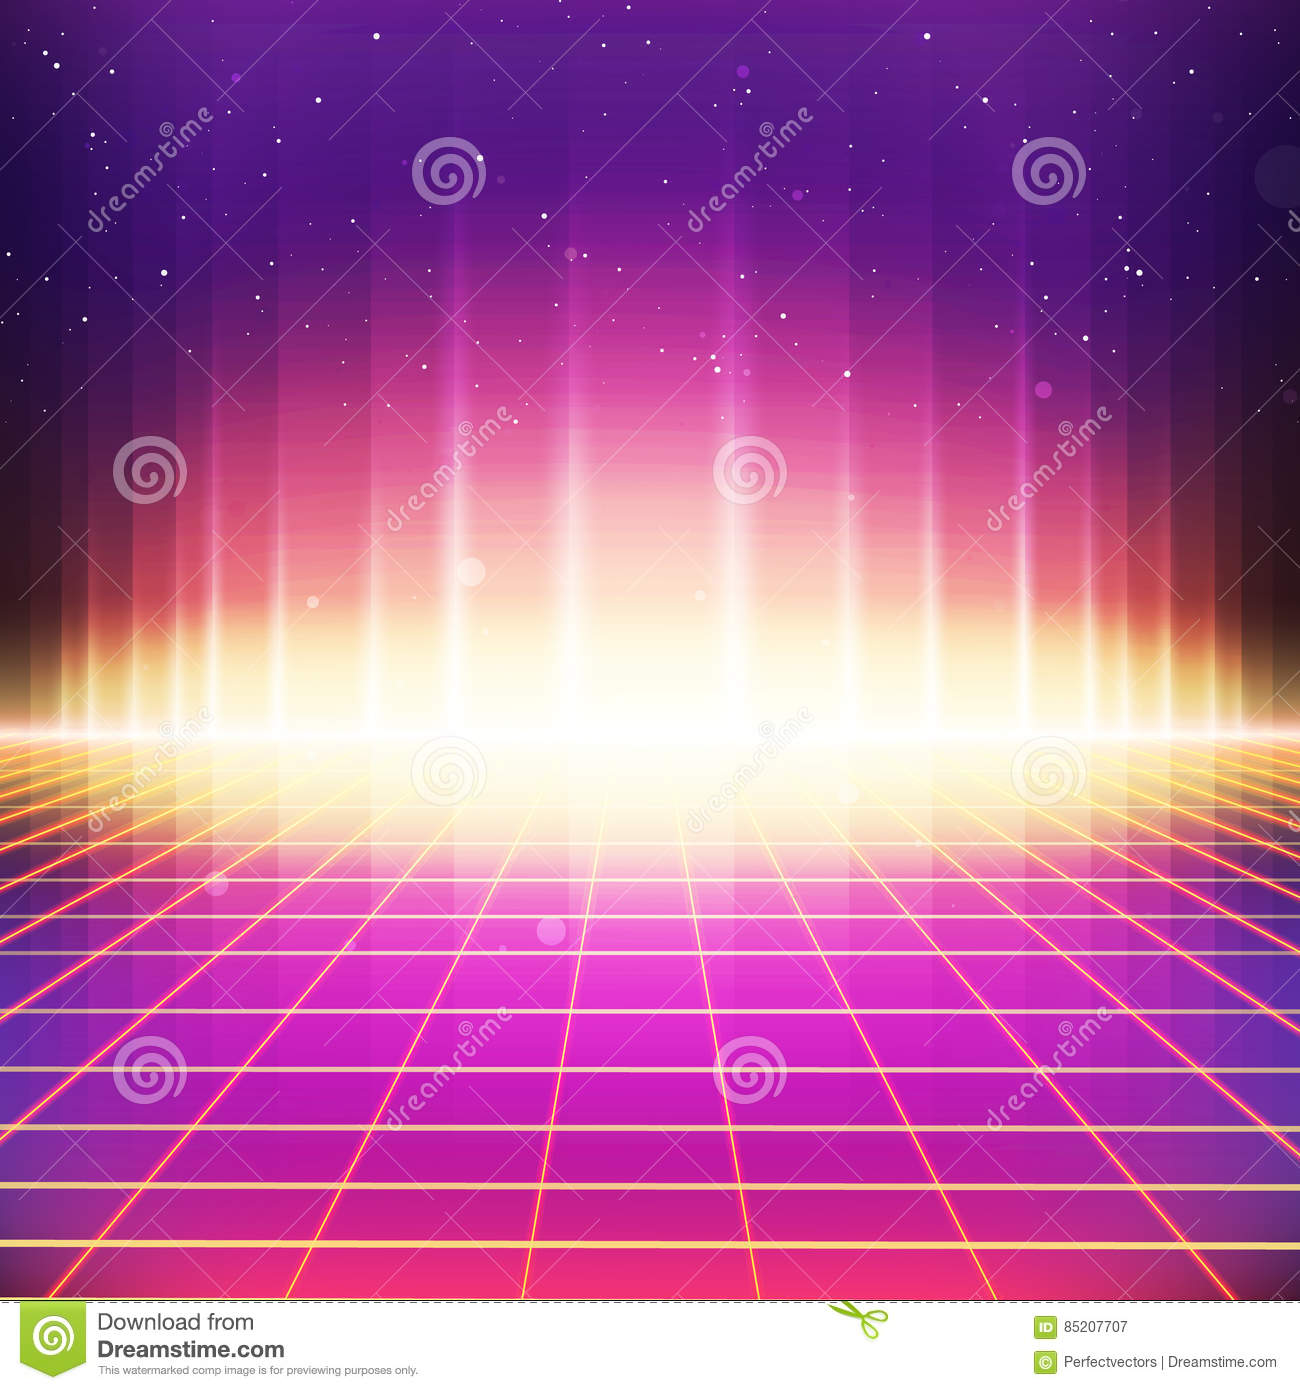 80s Retro Sci-Fi Background with Colorful Effects